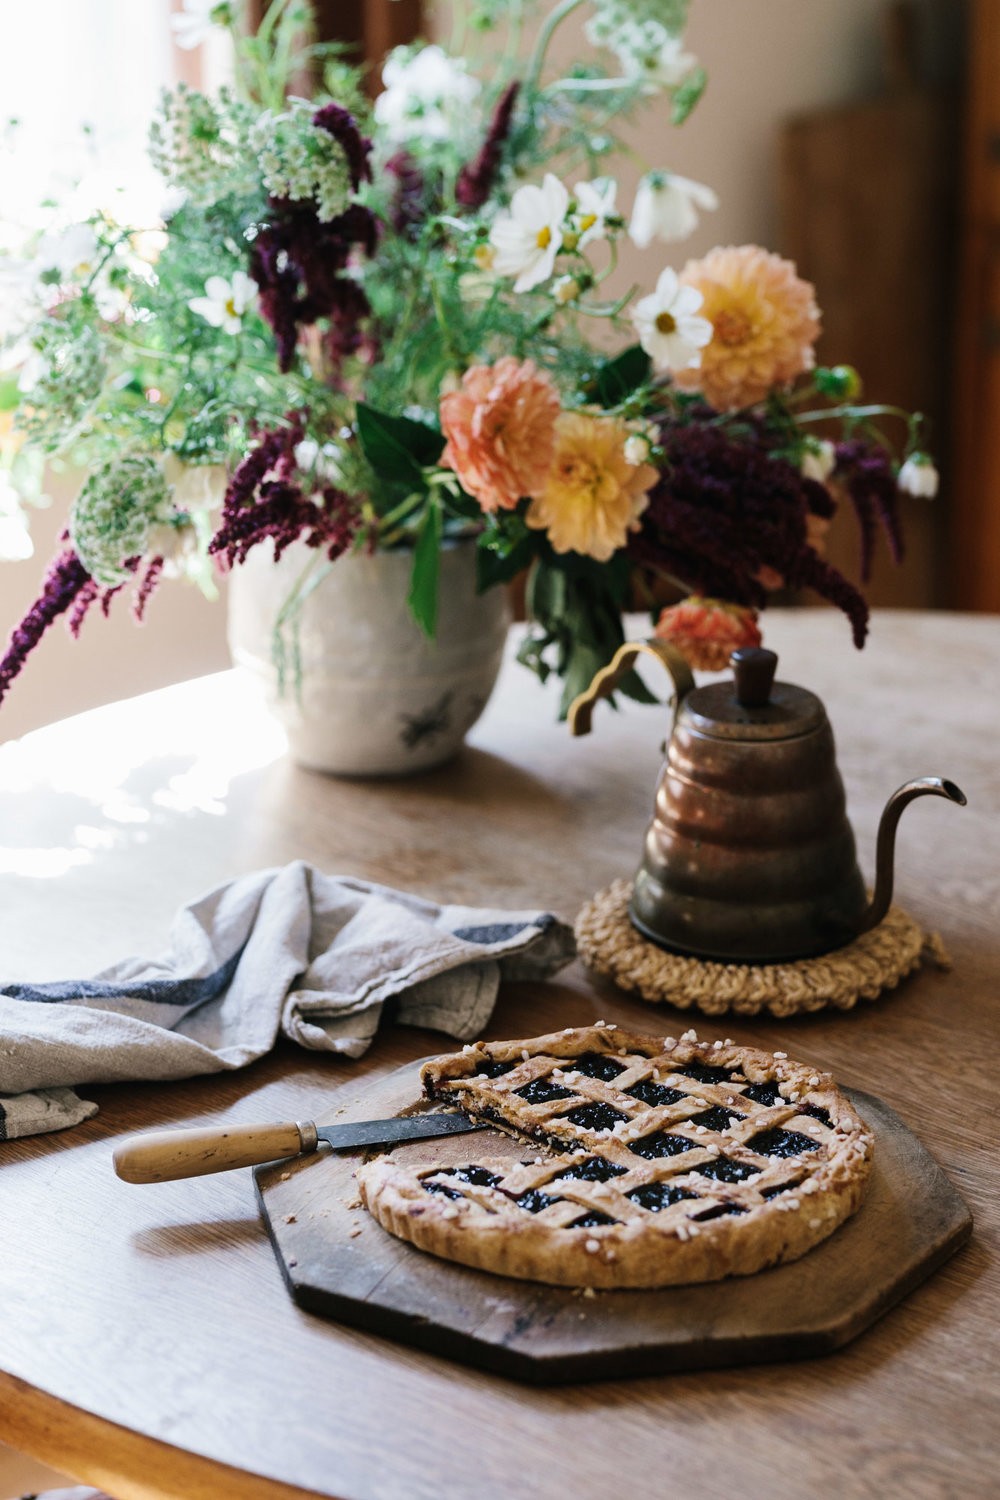 Julia Busuttil Nishimura for Habitus and her jam tart. Photography by Marnie Hawson, Melbourne lifestyle photographer.